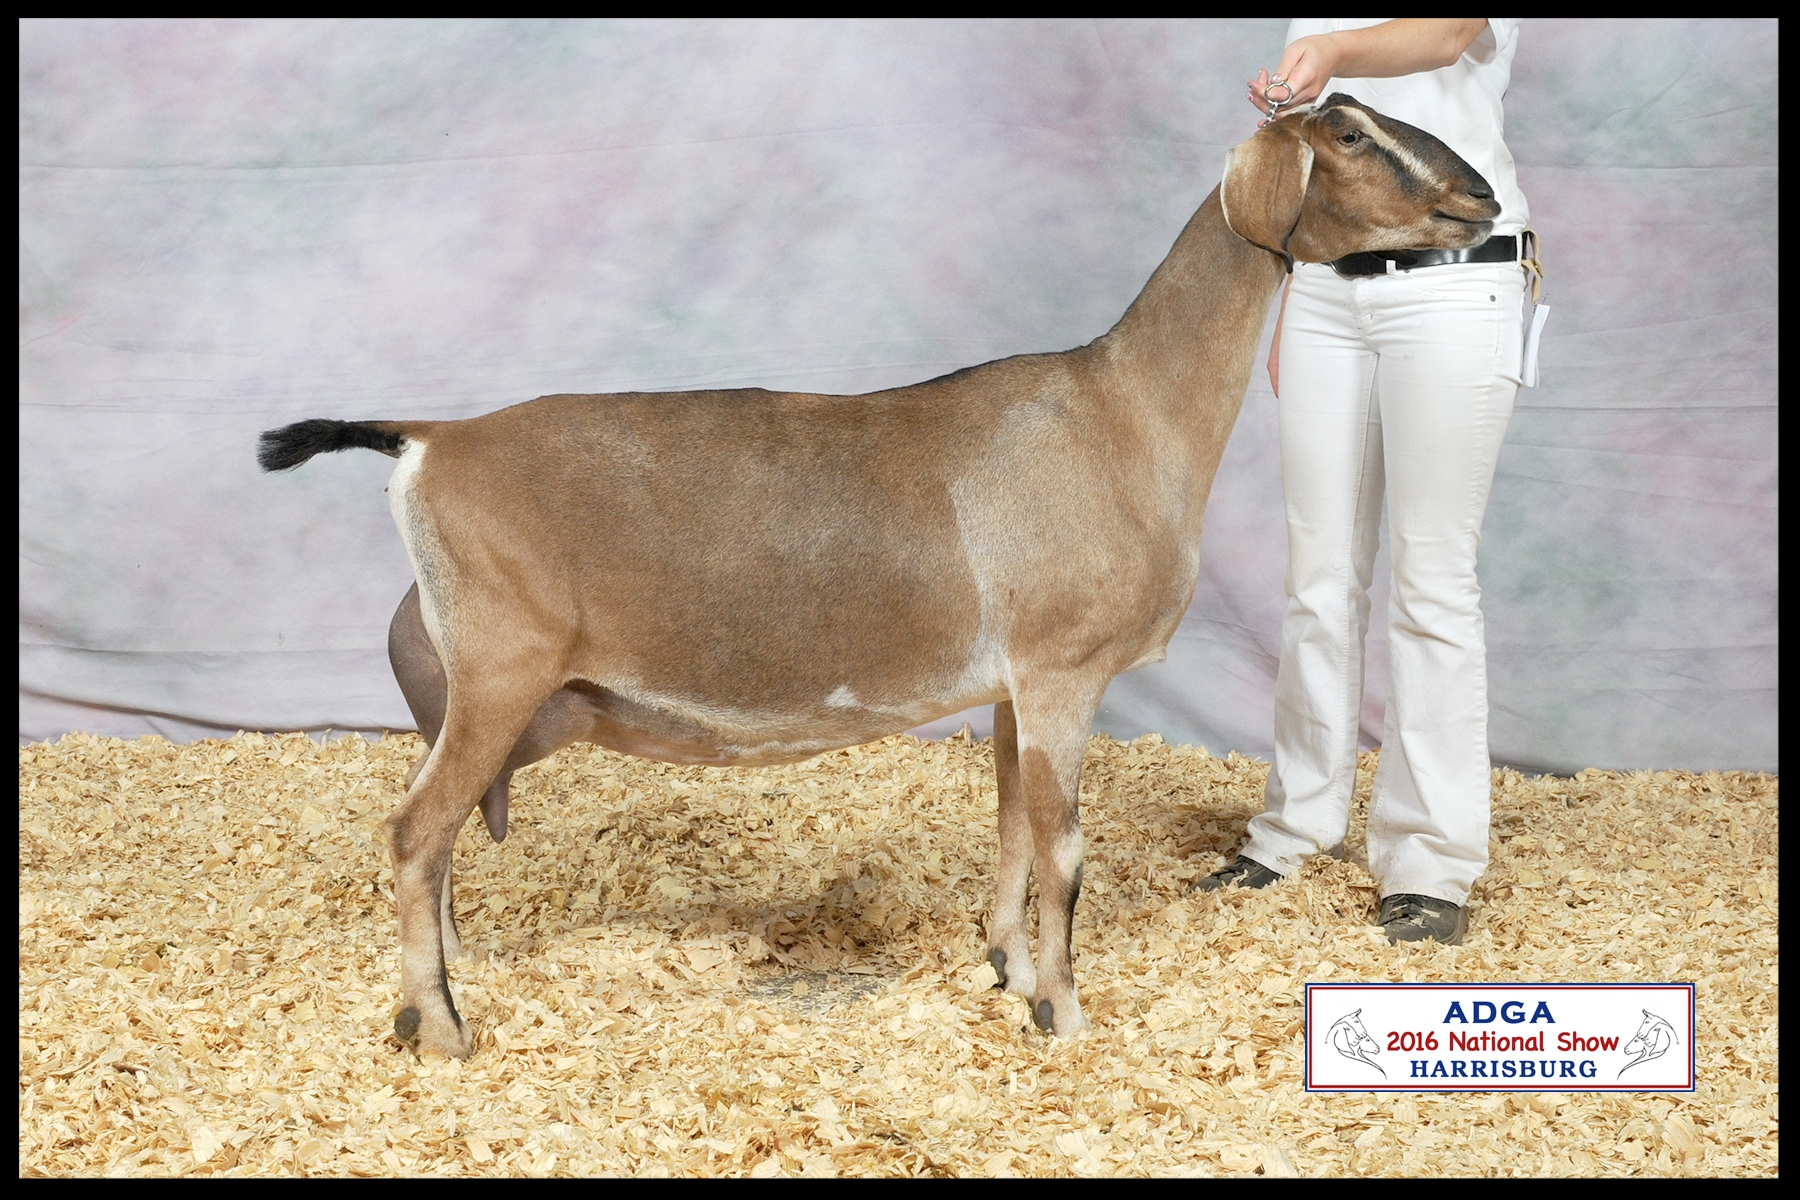 Carmel pictured at age 8, 5th place Aged Doe